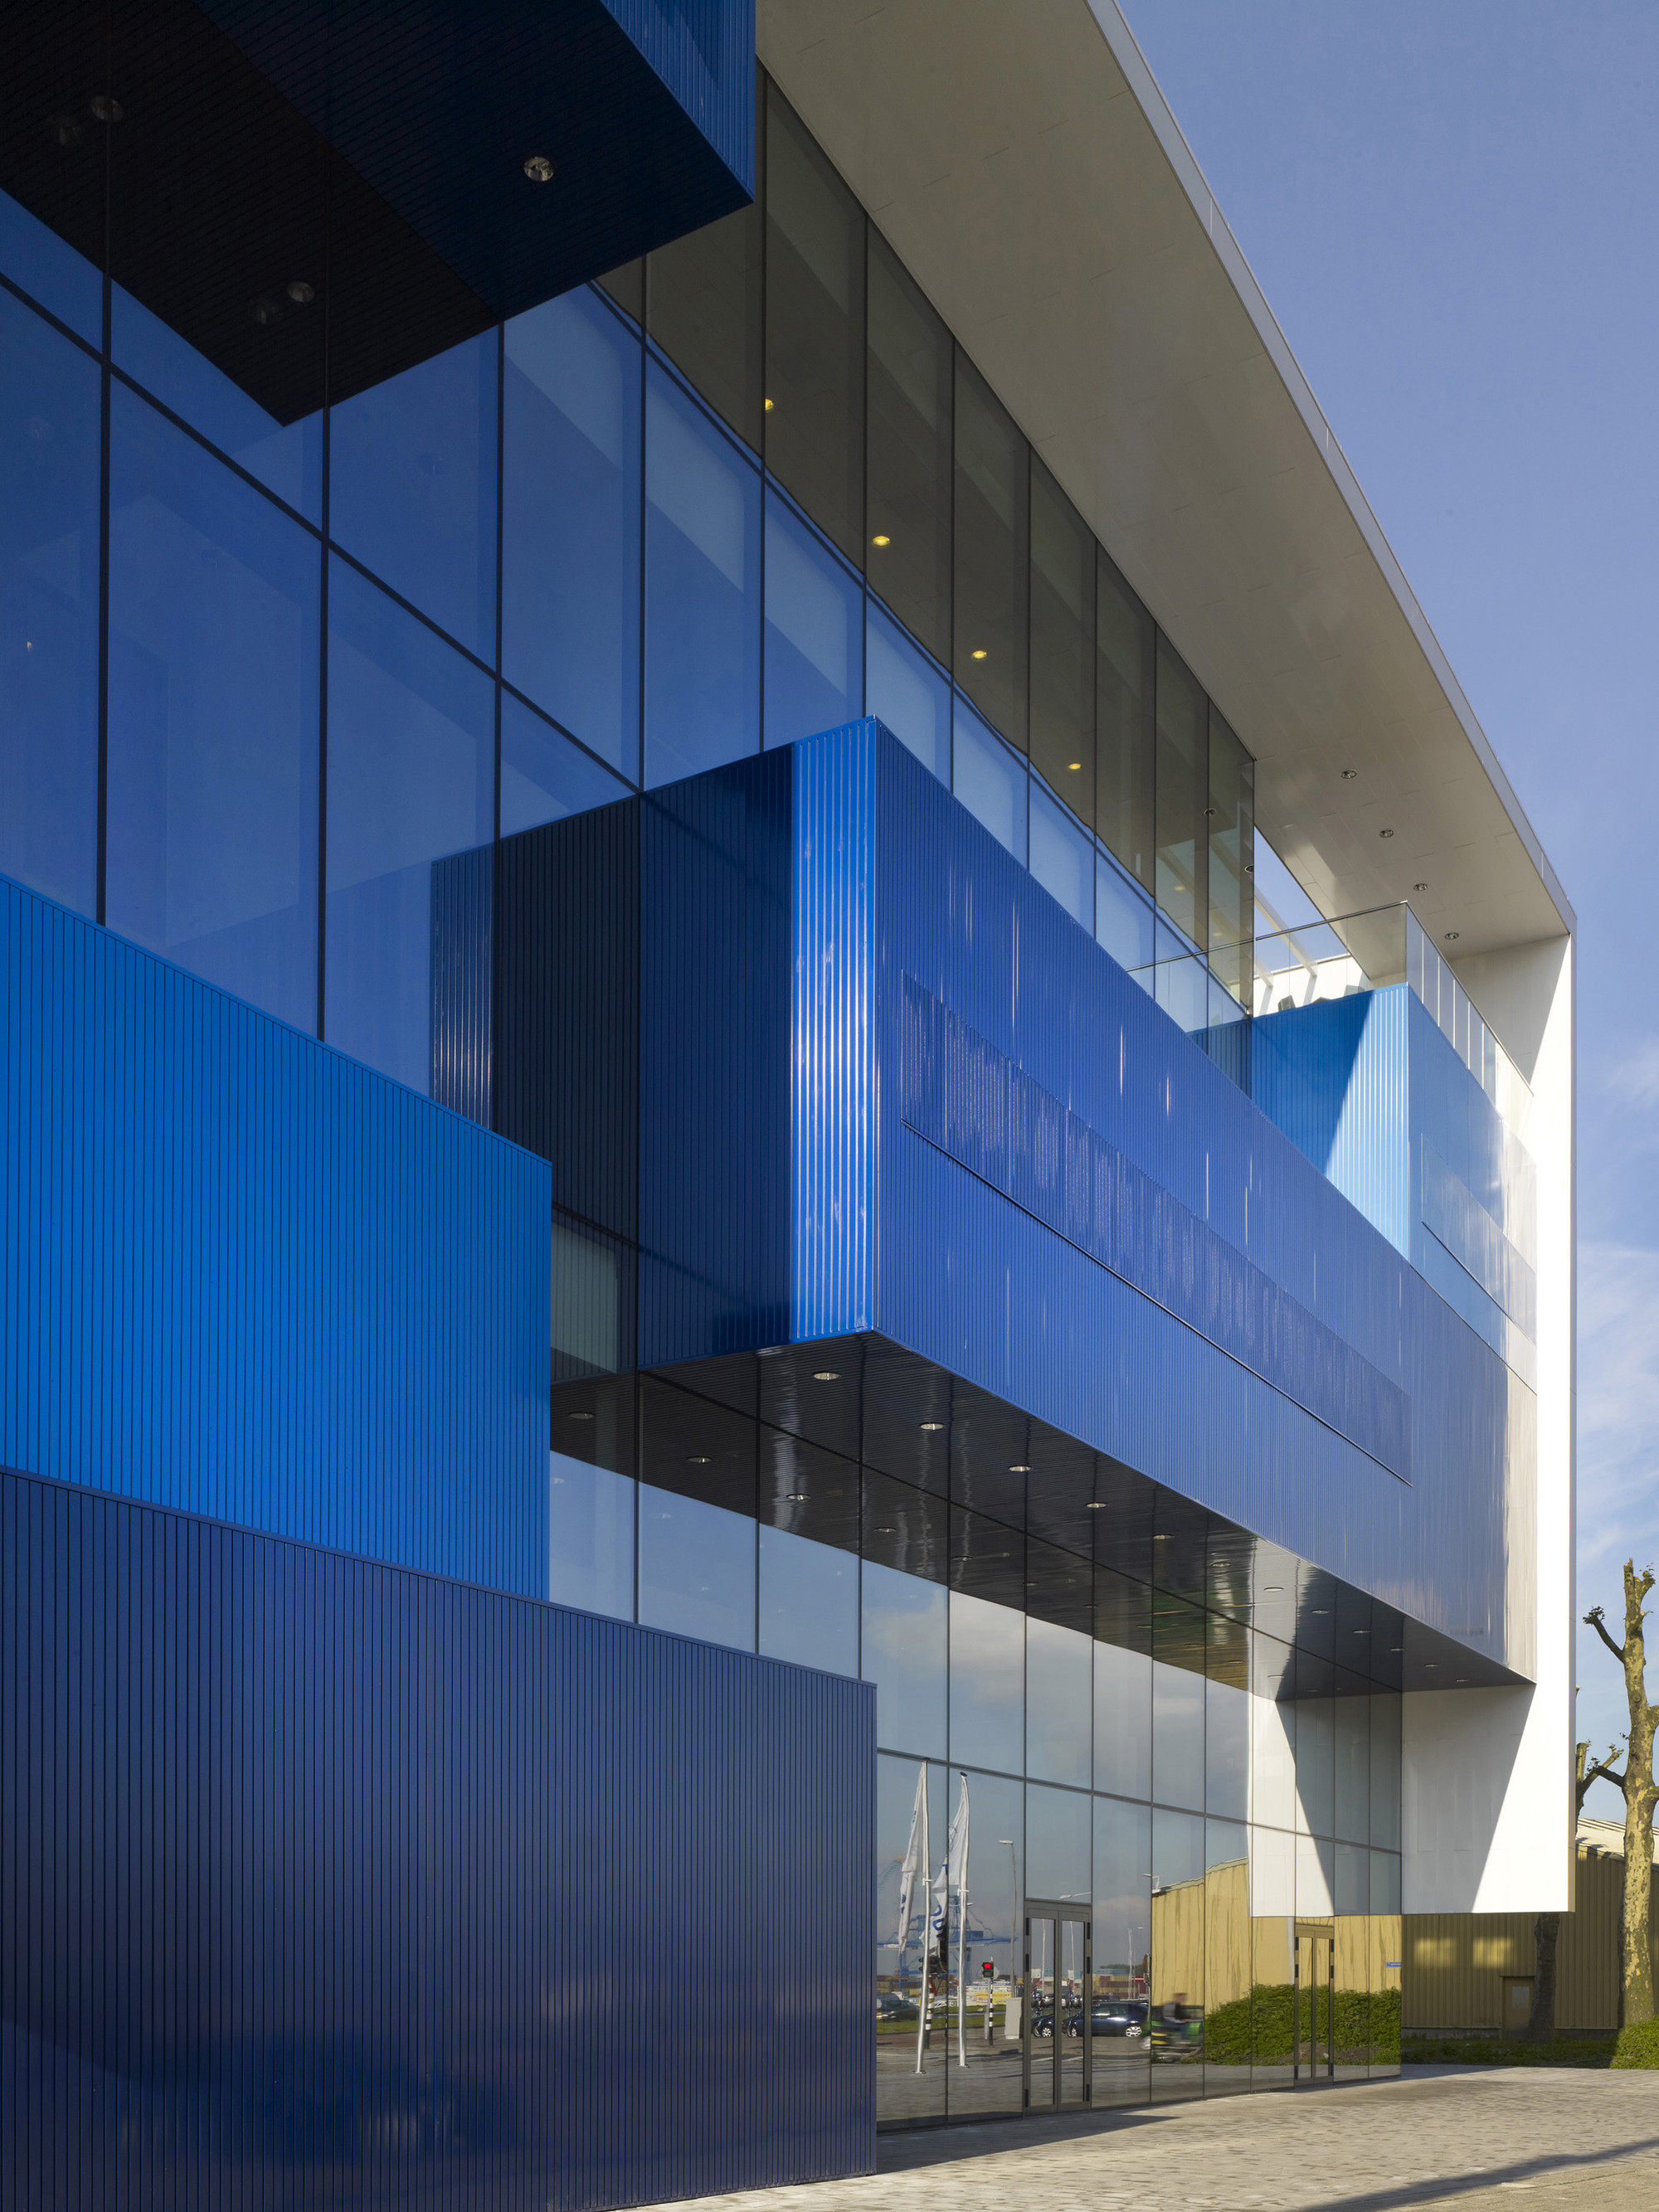 Shipping and Transport College / DP6